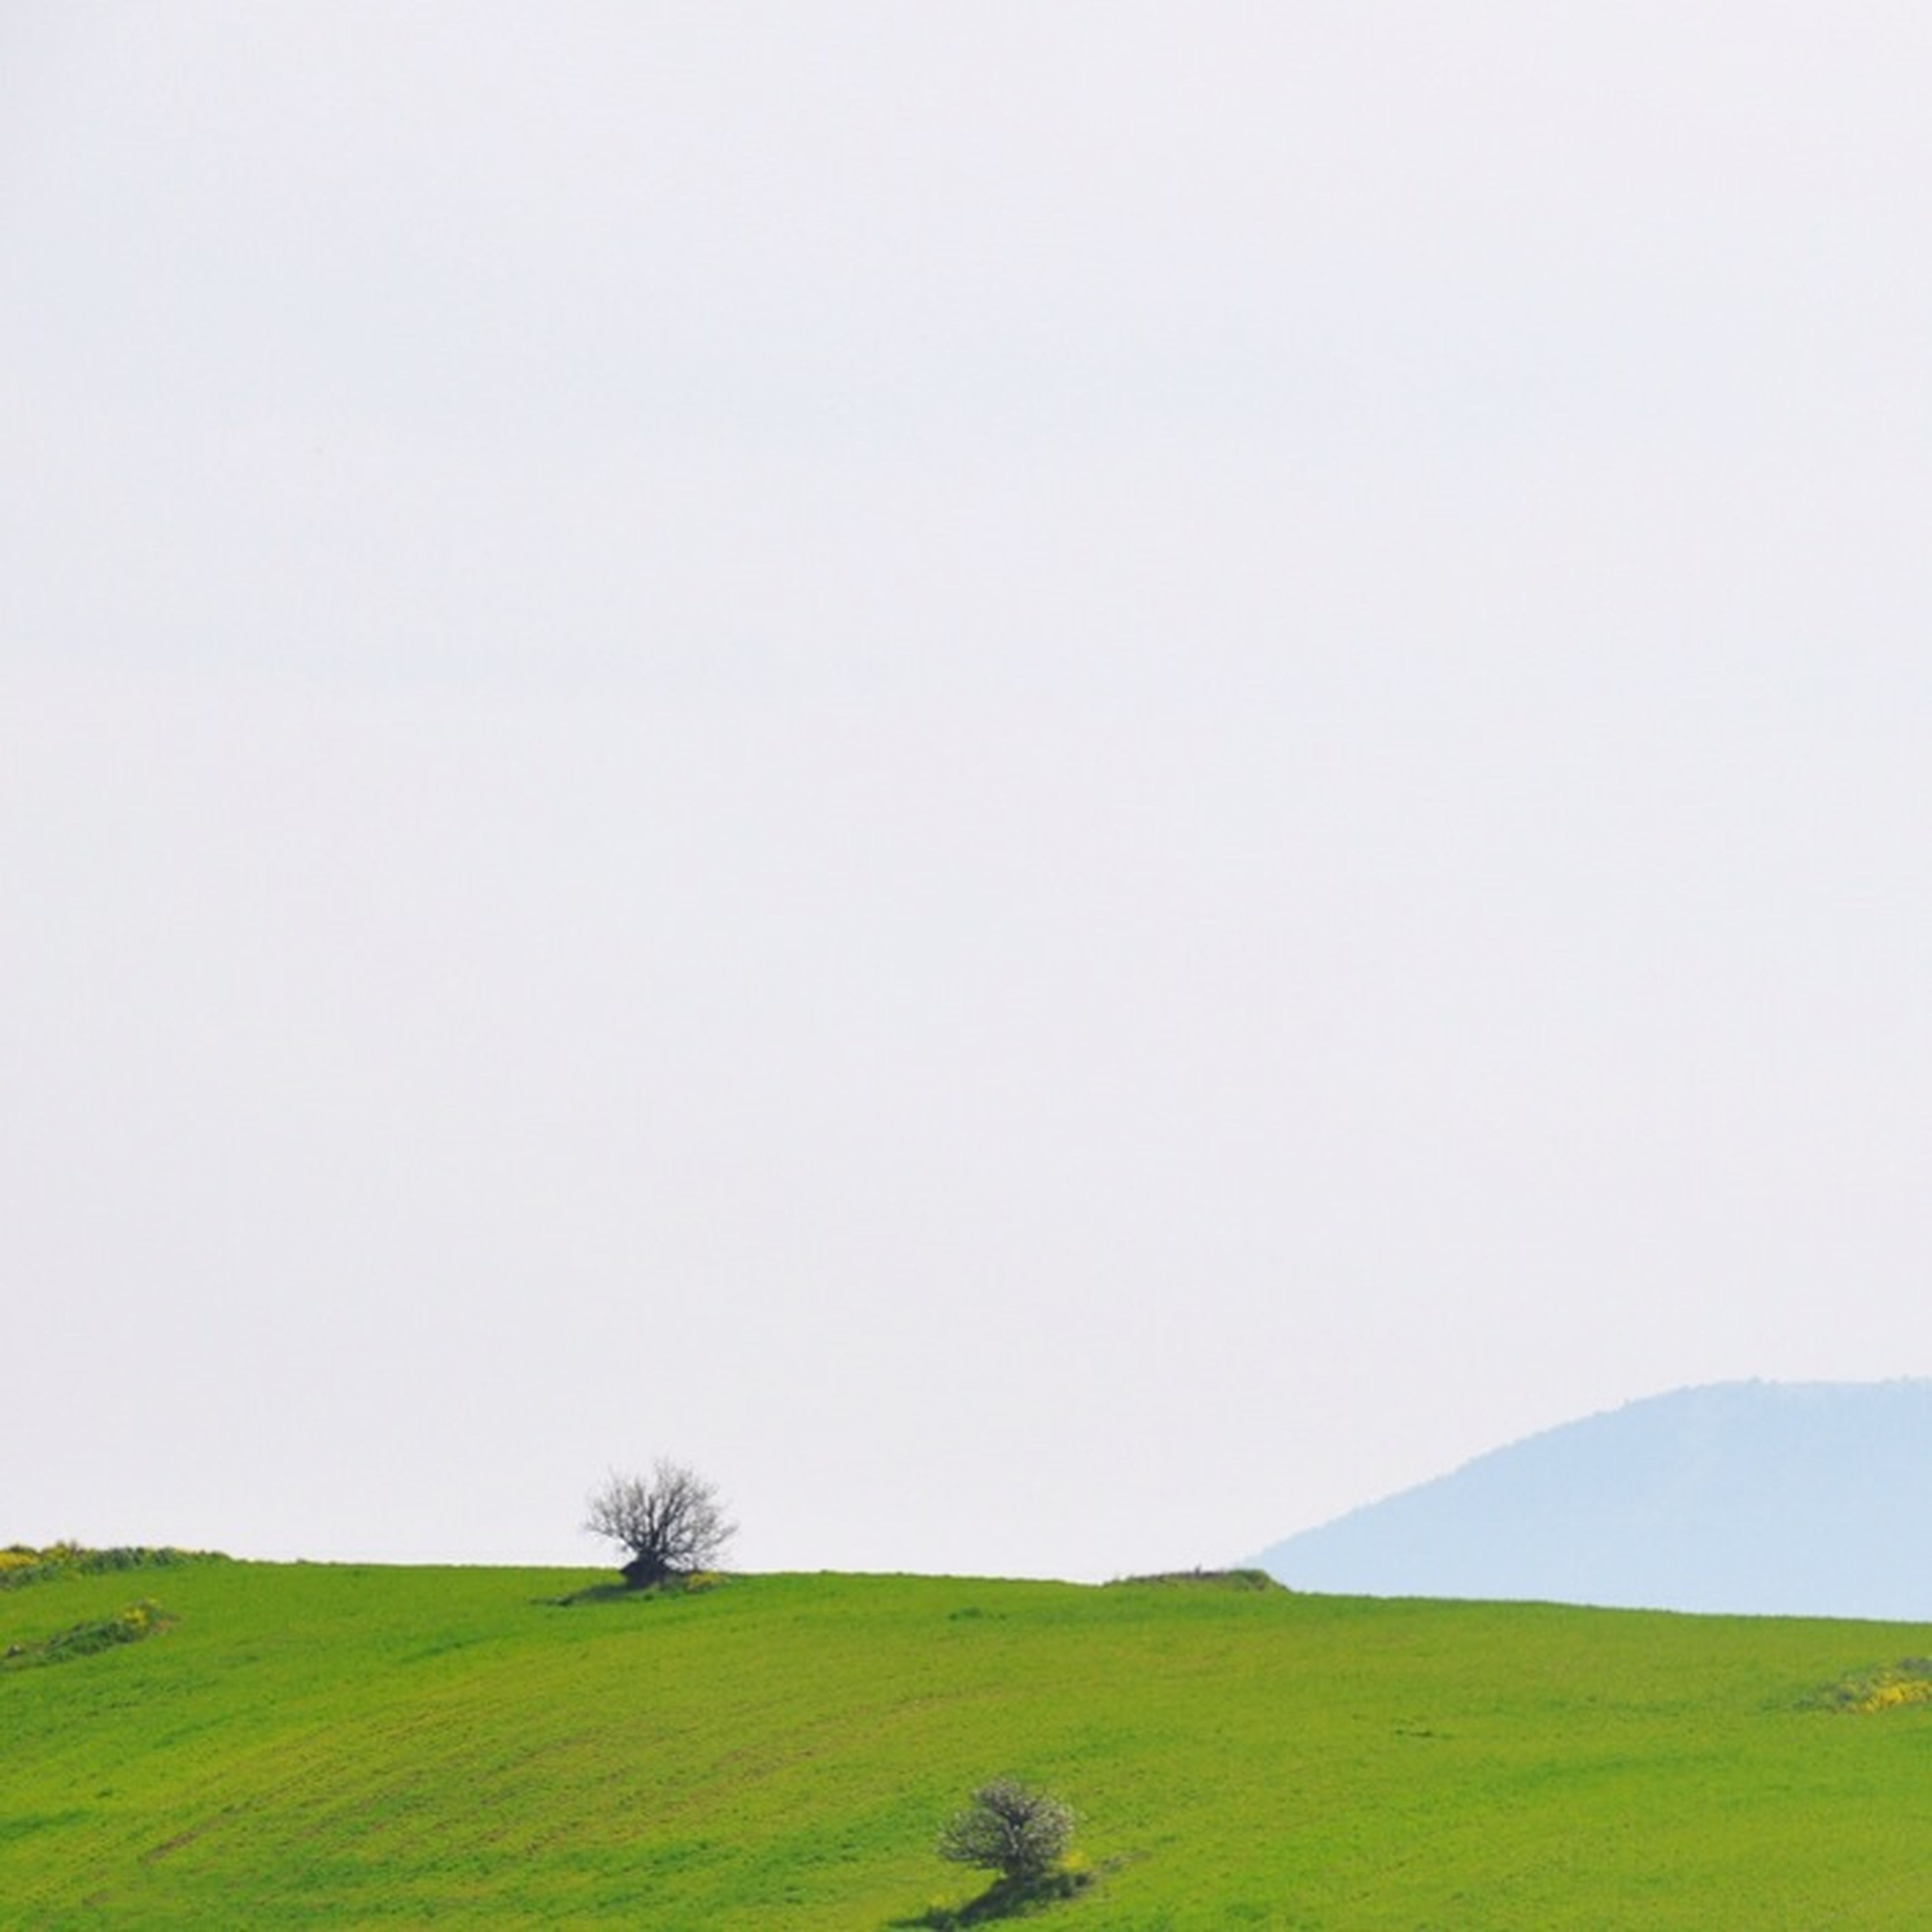 grass, clear sky, copy space, landscape, tranquil scene, tranquility, field, scenics, grassy, beauty in nature, green color, nature, non-urban scene, mountain, day, horizon over land, solitude, remote, countryside, growth